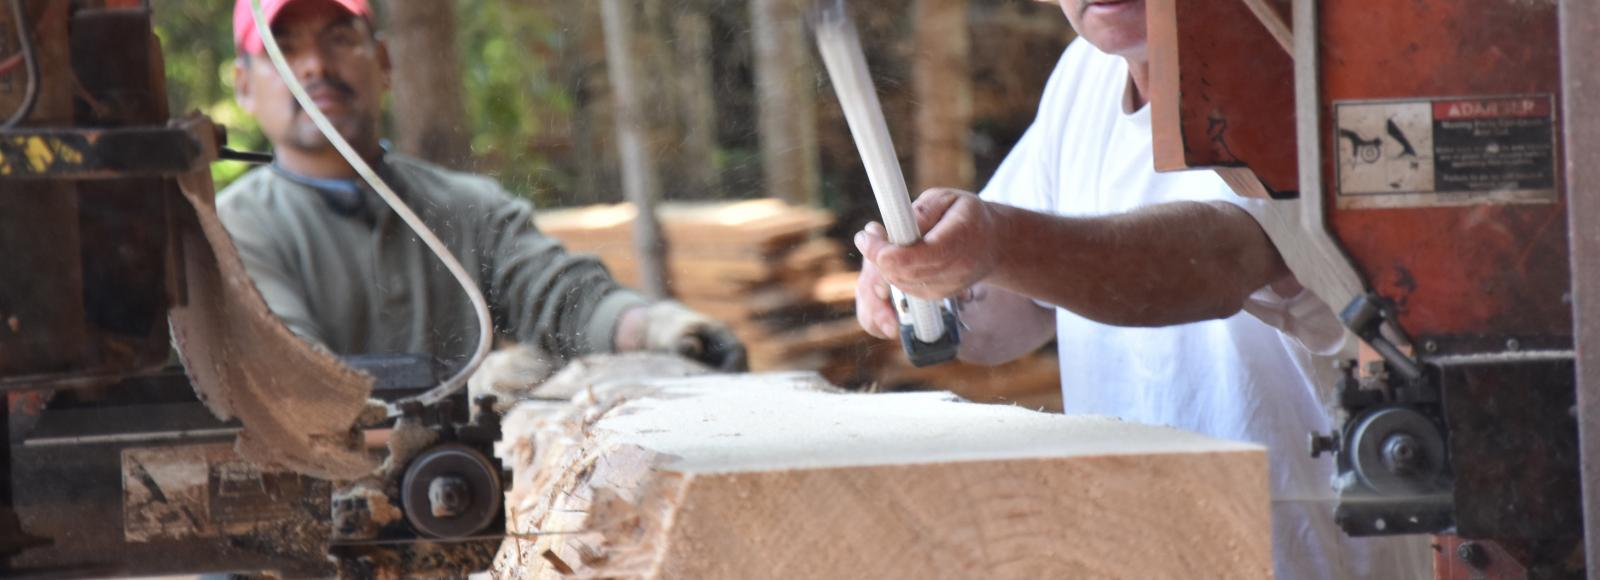 Two men operate an orange handmill, passing a log through to make slabs of wood.